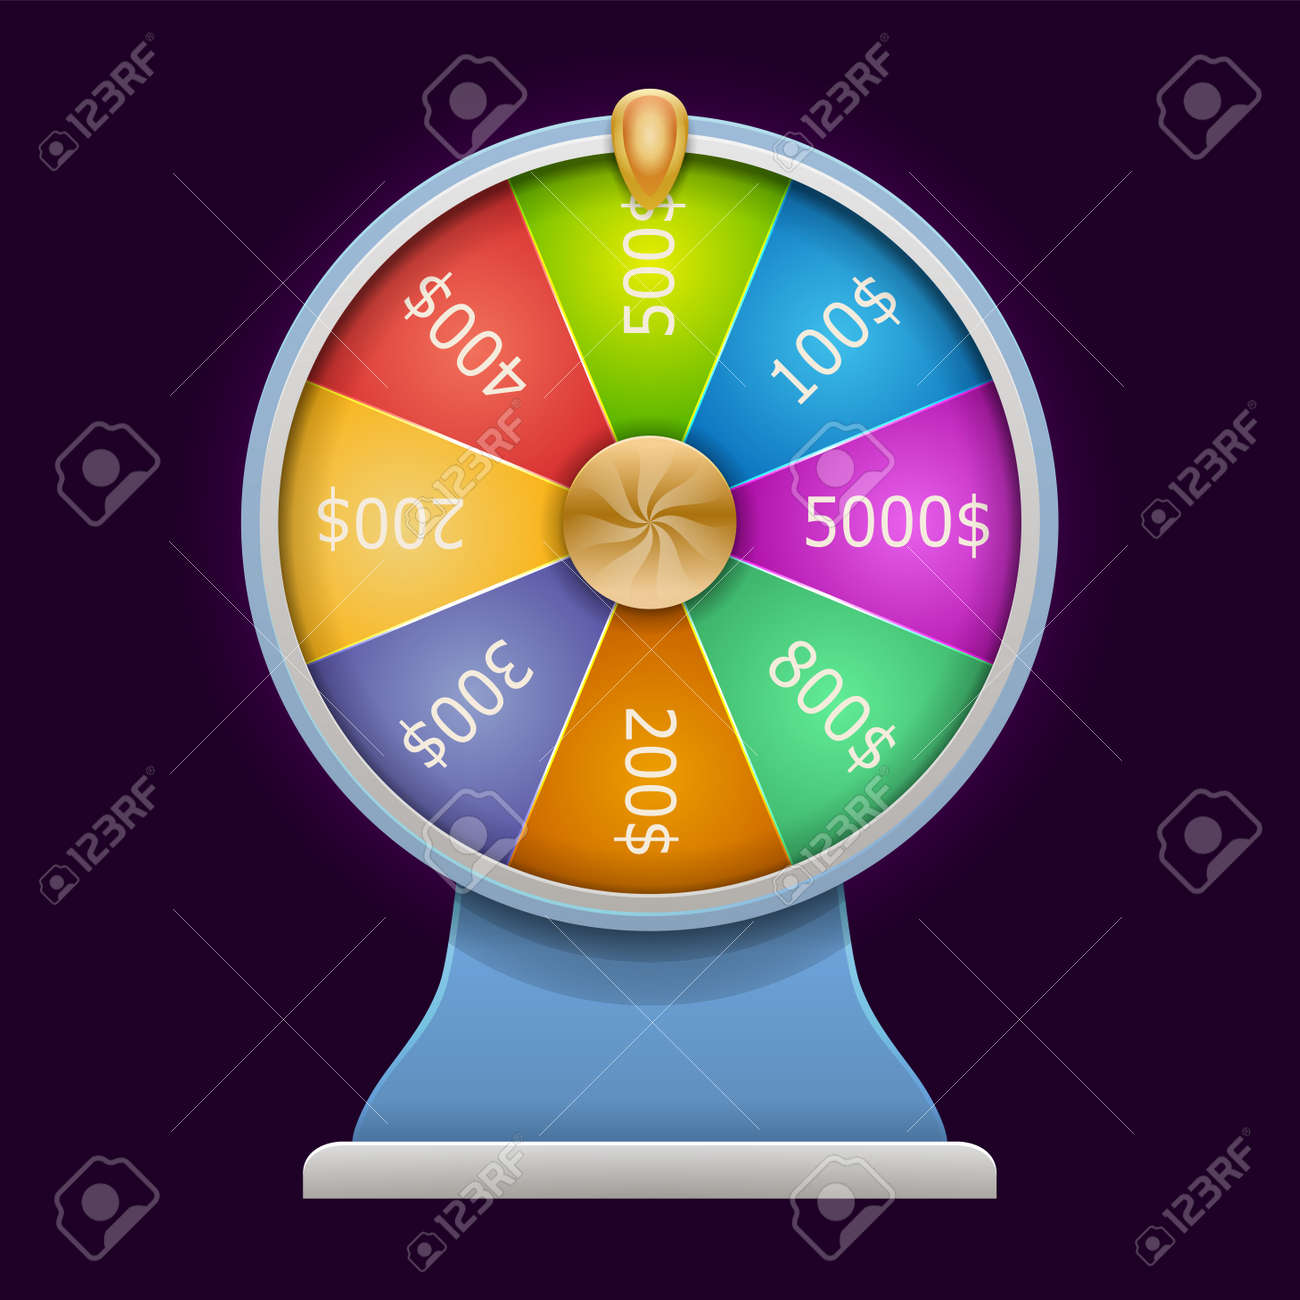 Spinning Wheel Of Fortune Money Win Casino Game 3d Realistic Royalty Free Cliparts Vectors And Stock Illustration Image 84818809